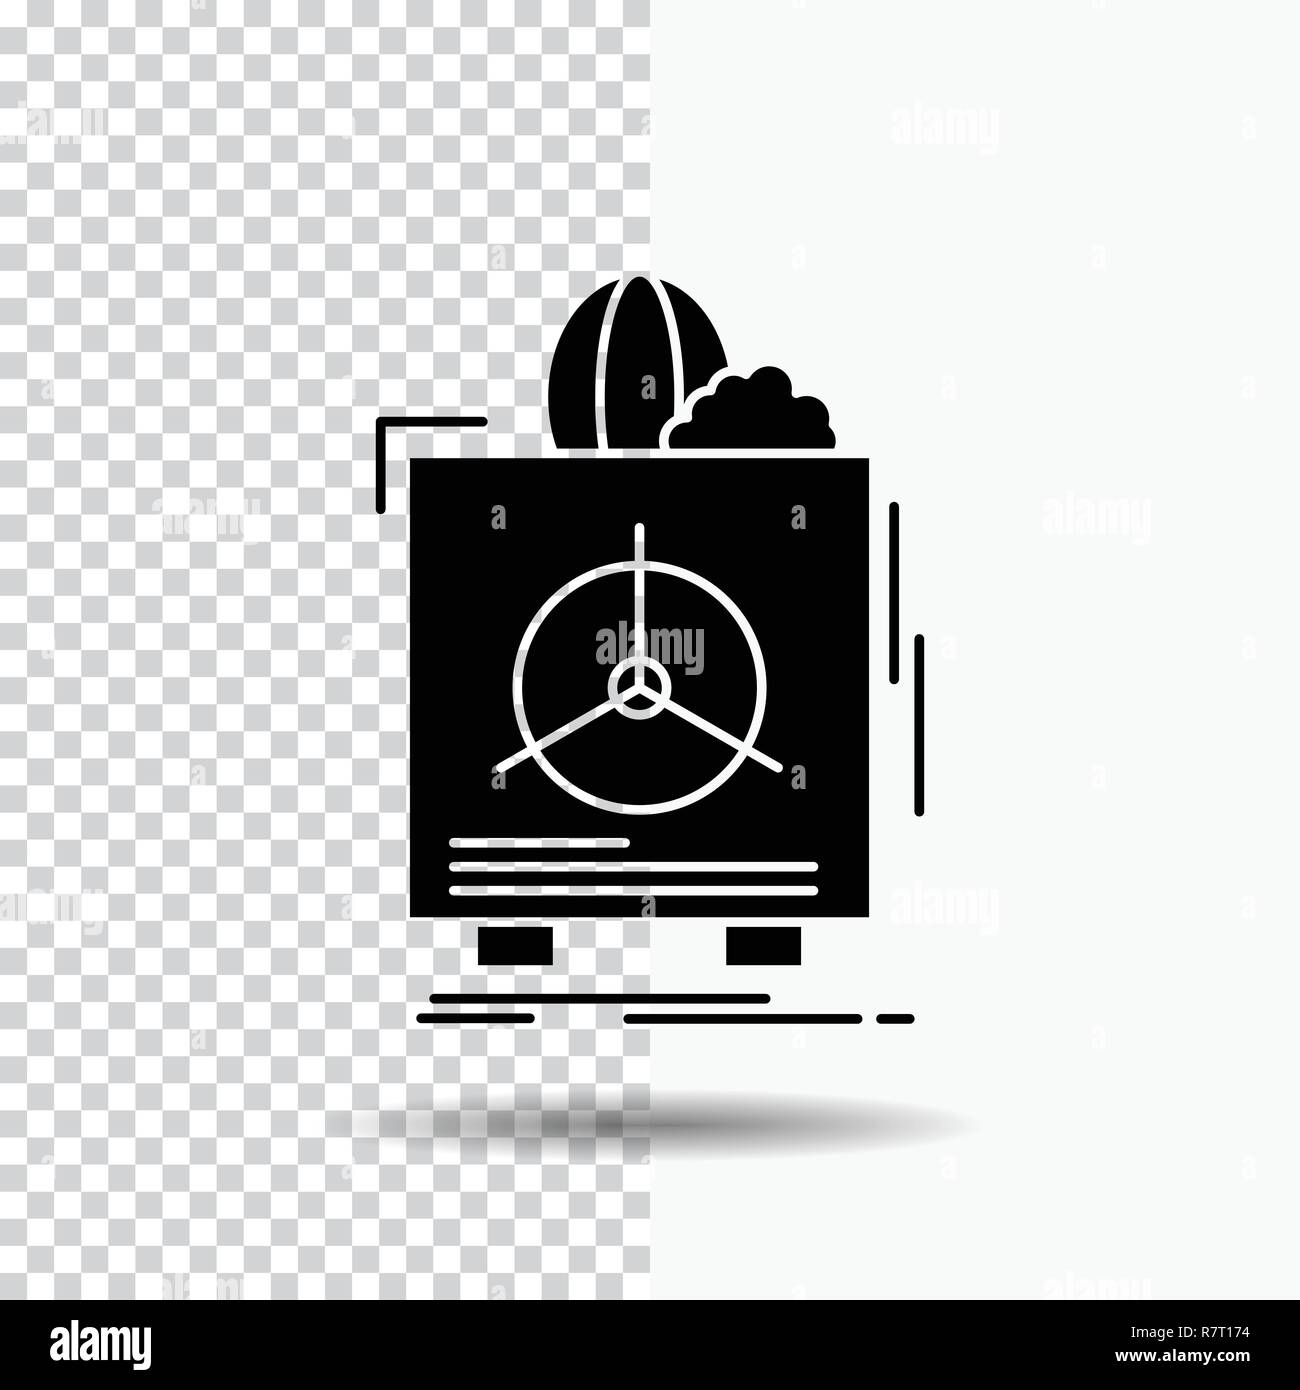 insurance, Fragile, product, warranty, health Glyph Icon on Transparent Background. Black Icon - Stock Vector